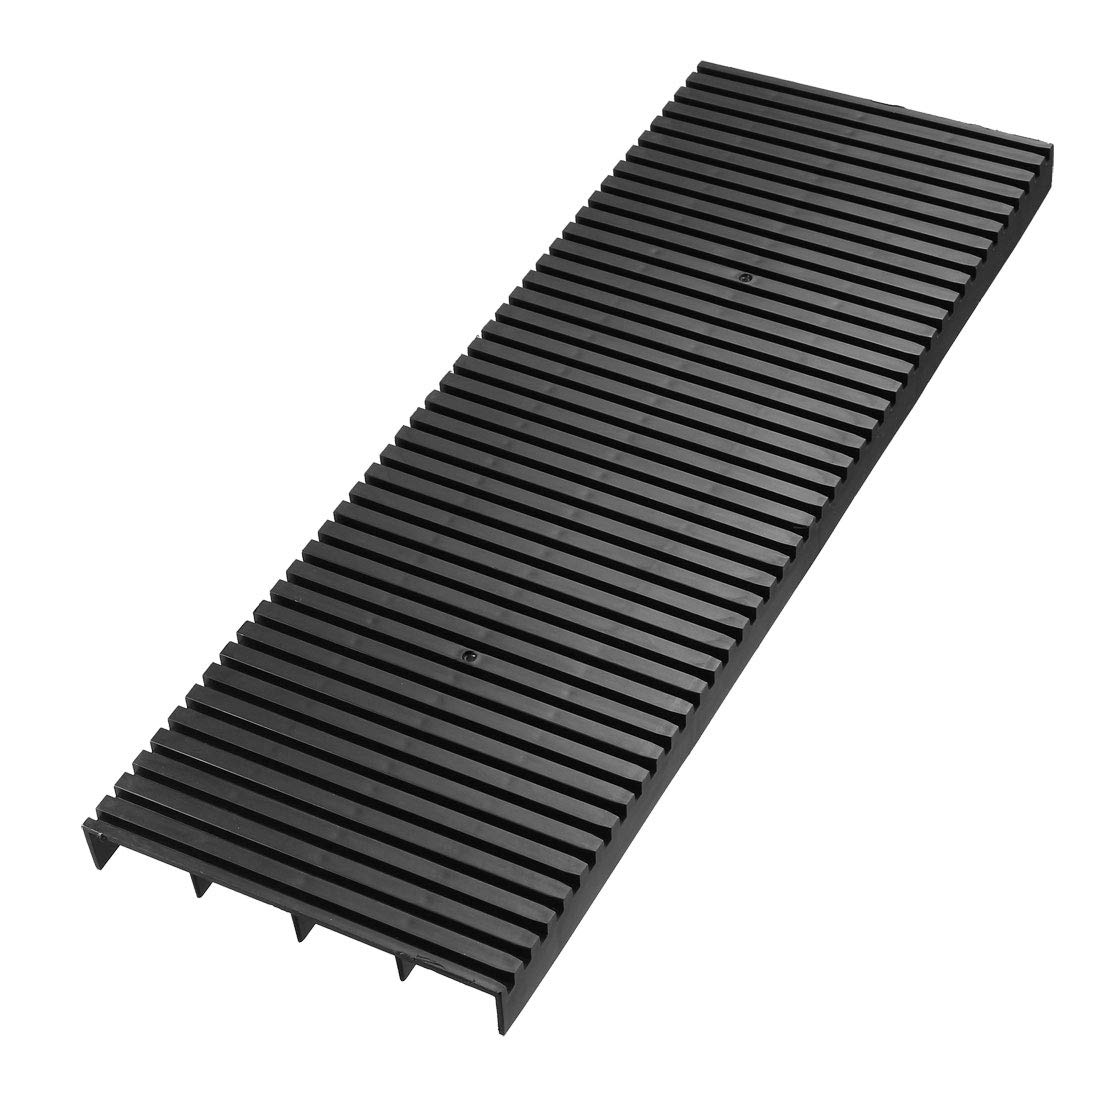 uxcell PCB Tray ESD Shelf Storage Turnover Rack, Straight-Type, 42 Slot by uxcell